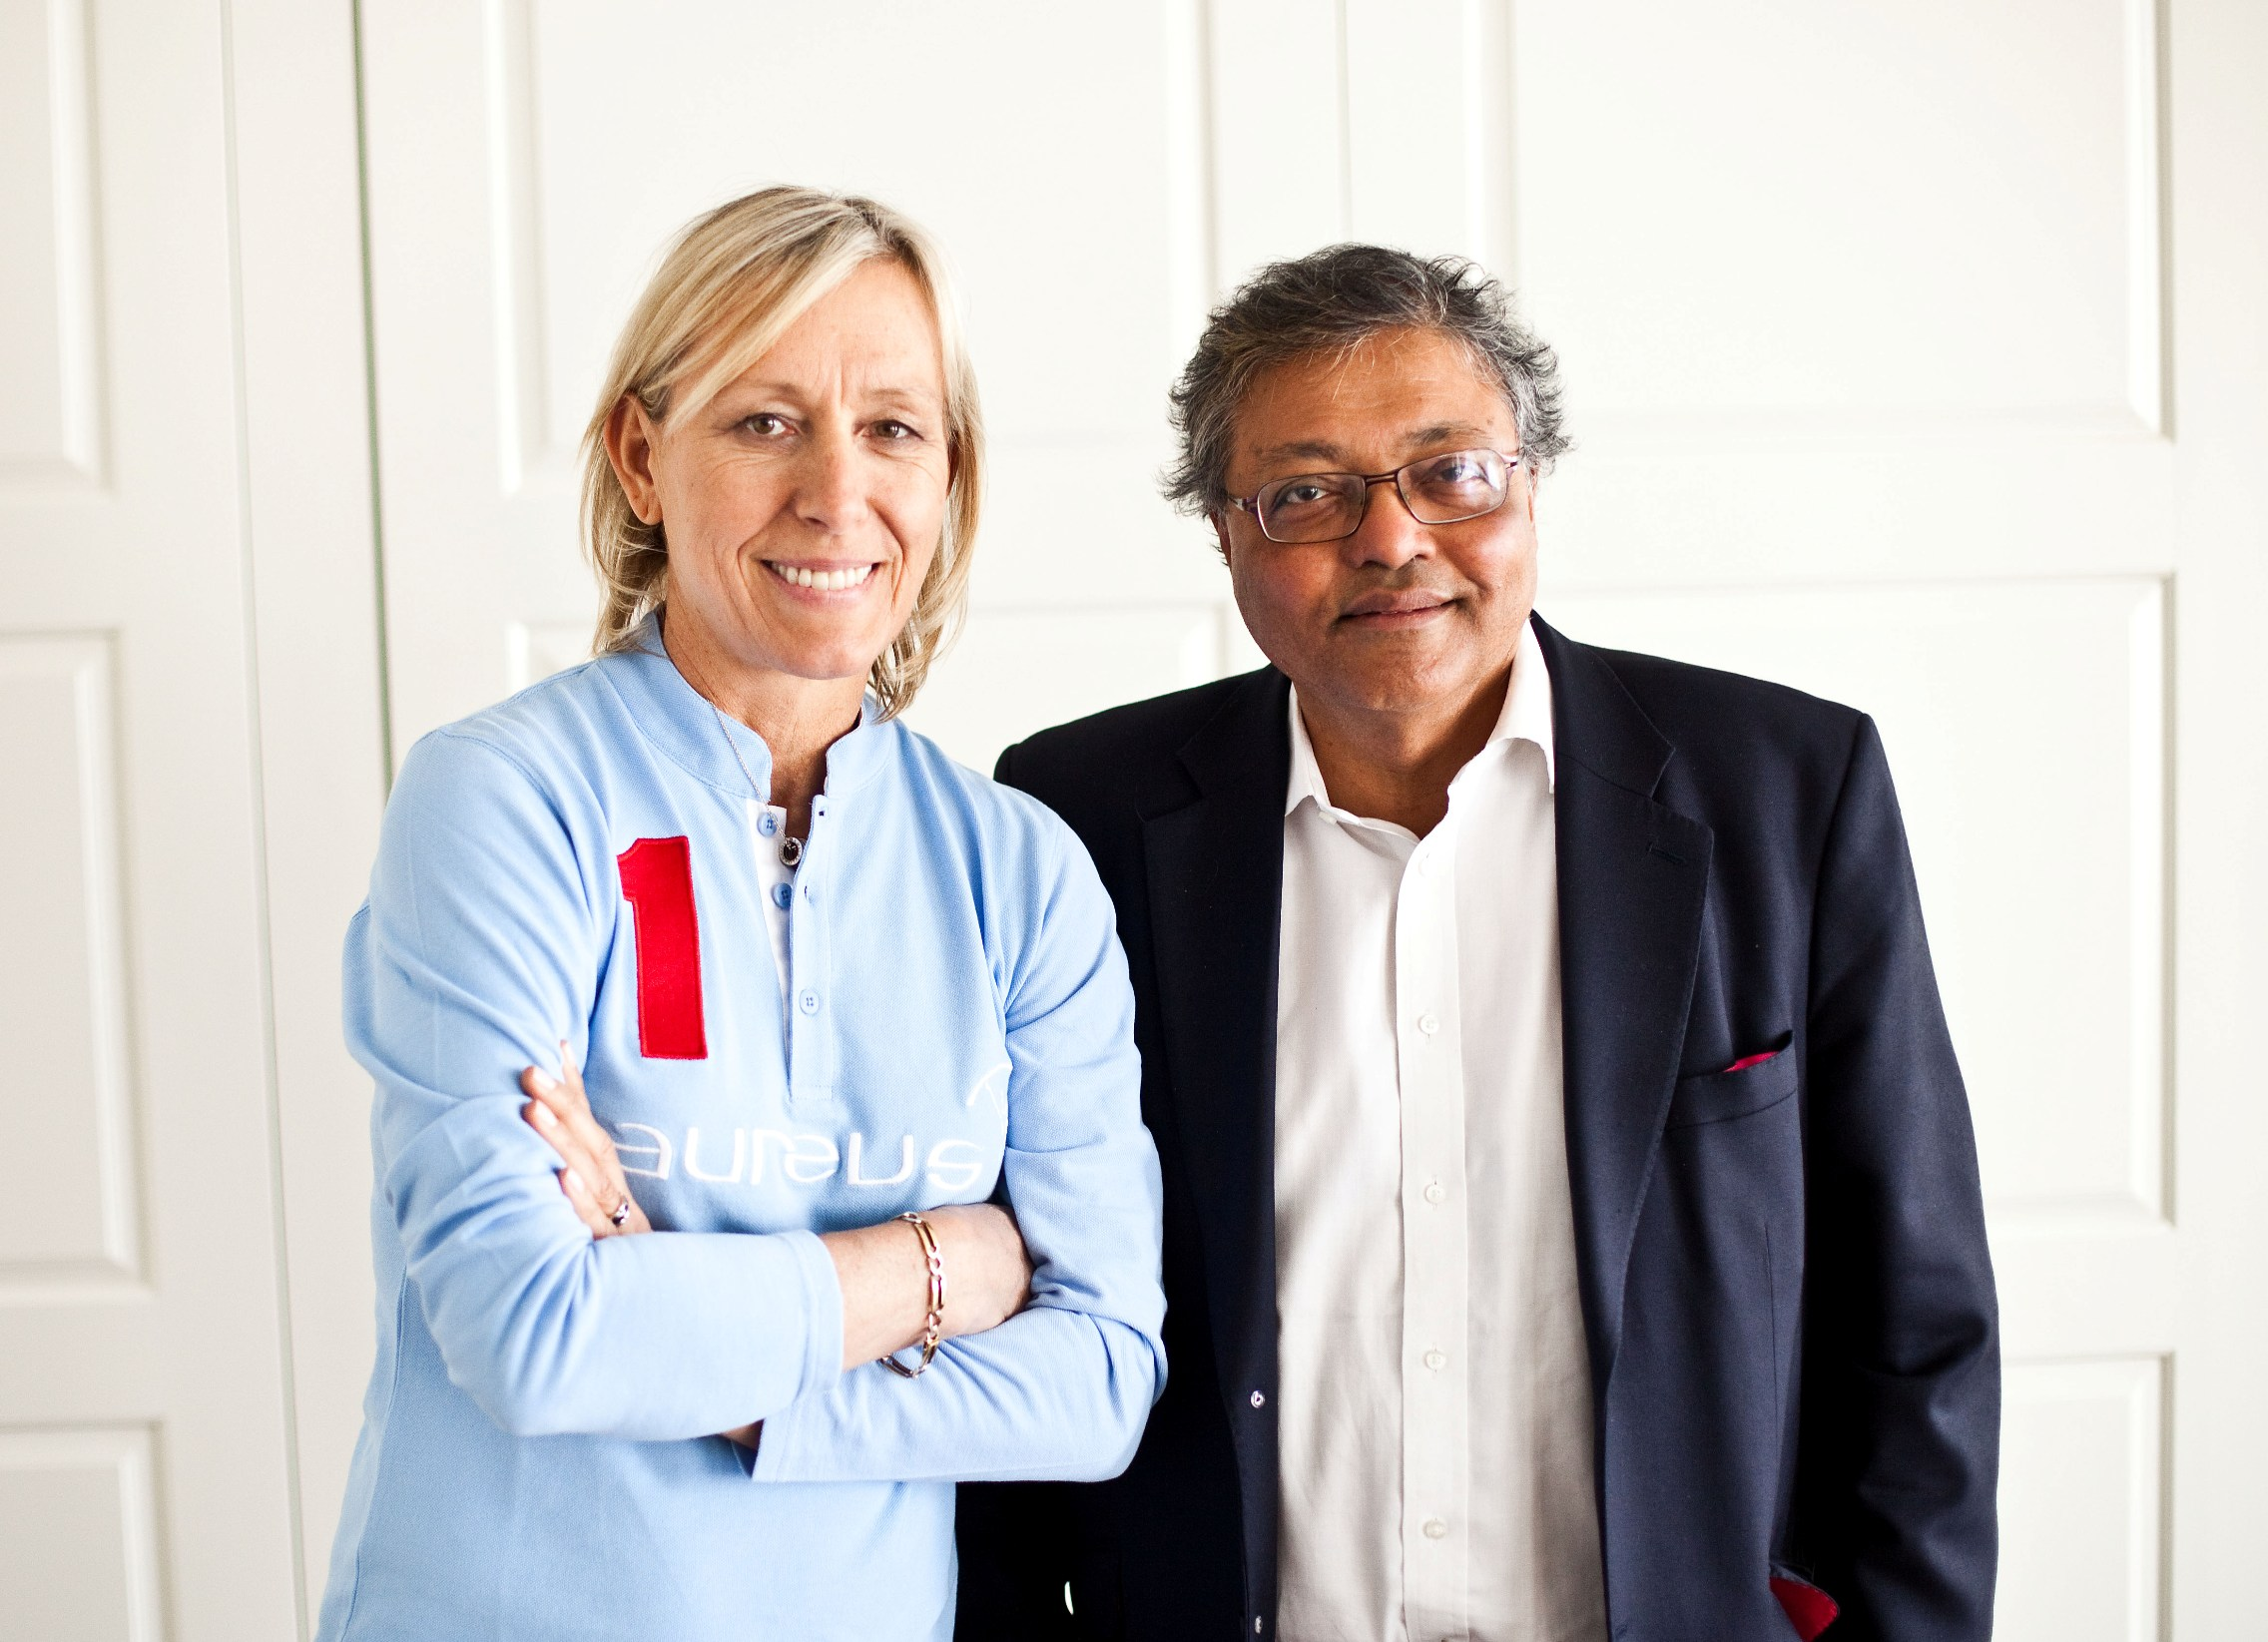 Mihir and Martina Navaratilova